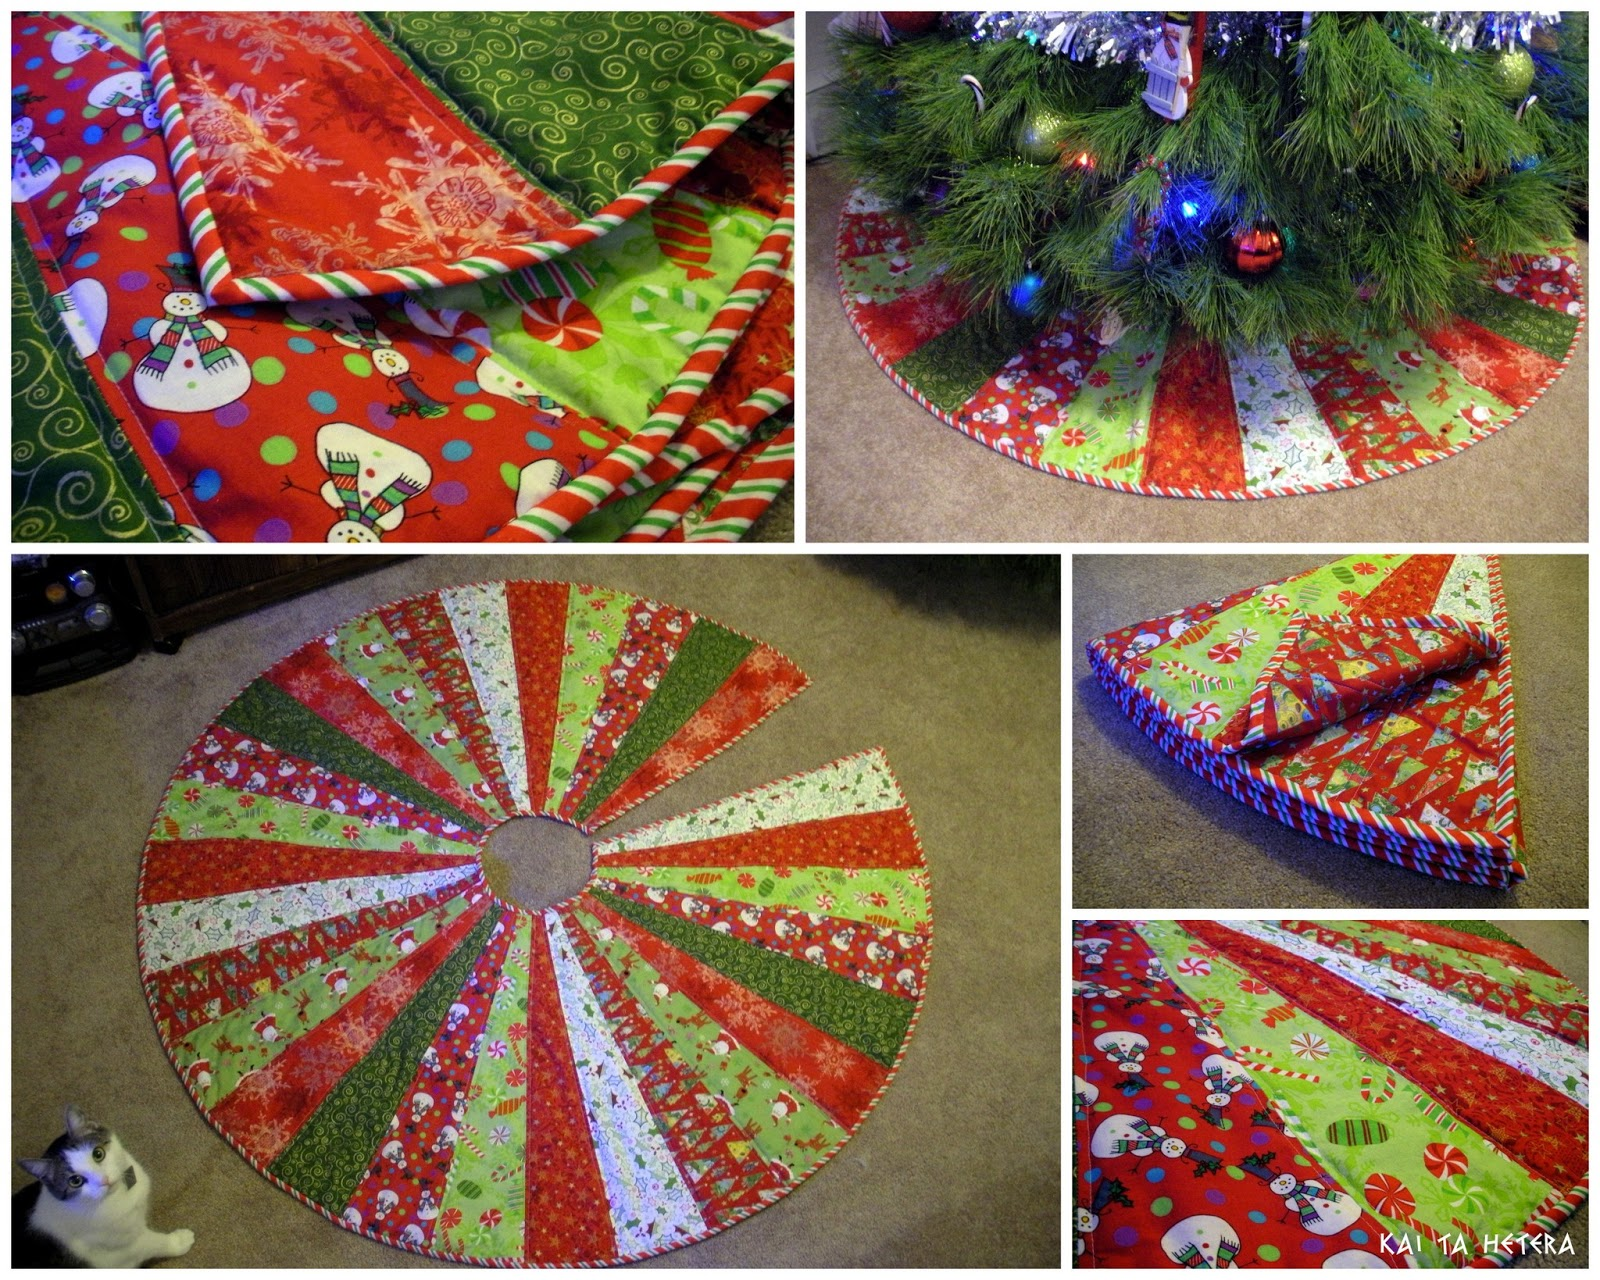 quilted christmas tree skirt tutorial by kelsey keefe at kai ta hetera - Quilted Christmas Tree Skirt Pattern